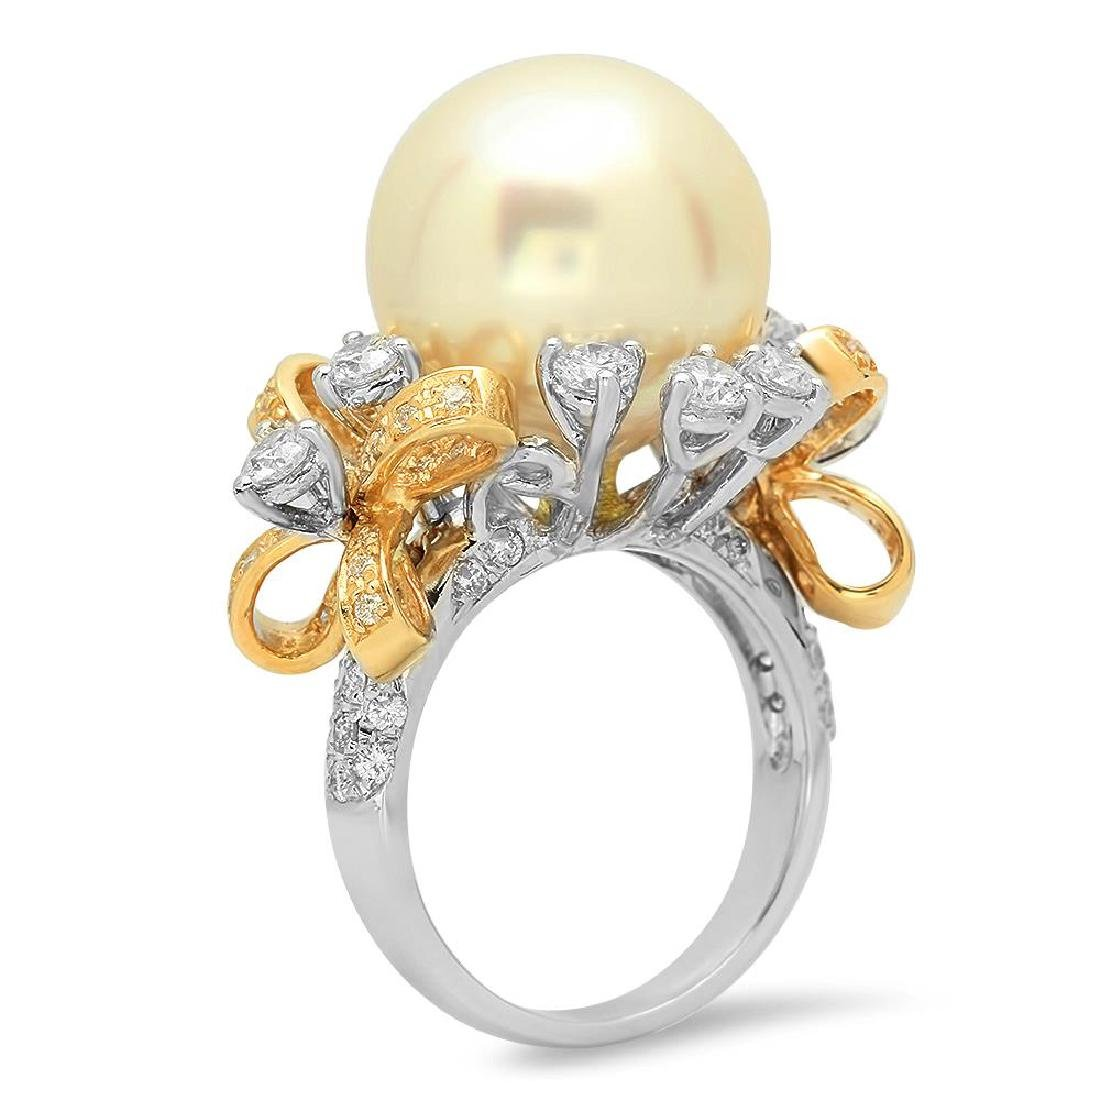 14K Gold 15mm South Sea Pearl 2.26cts Diamond Ring - 2